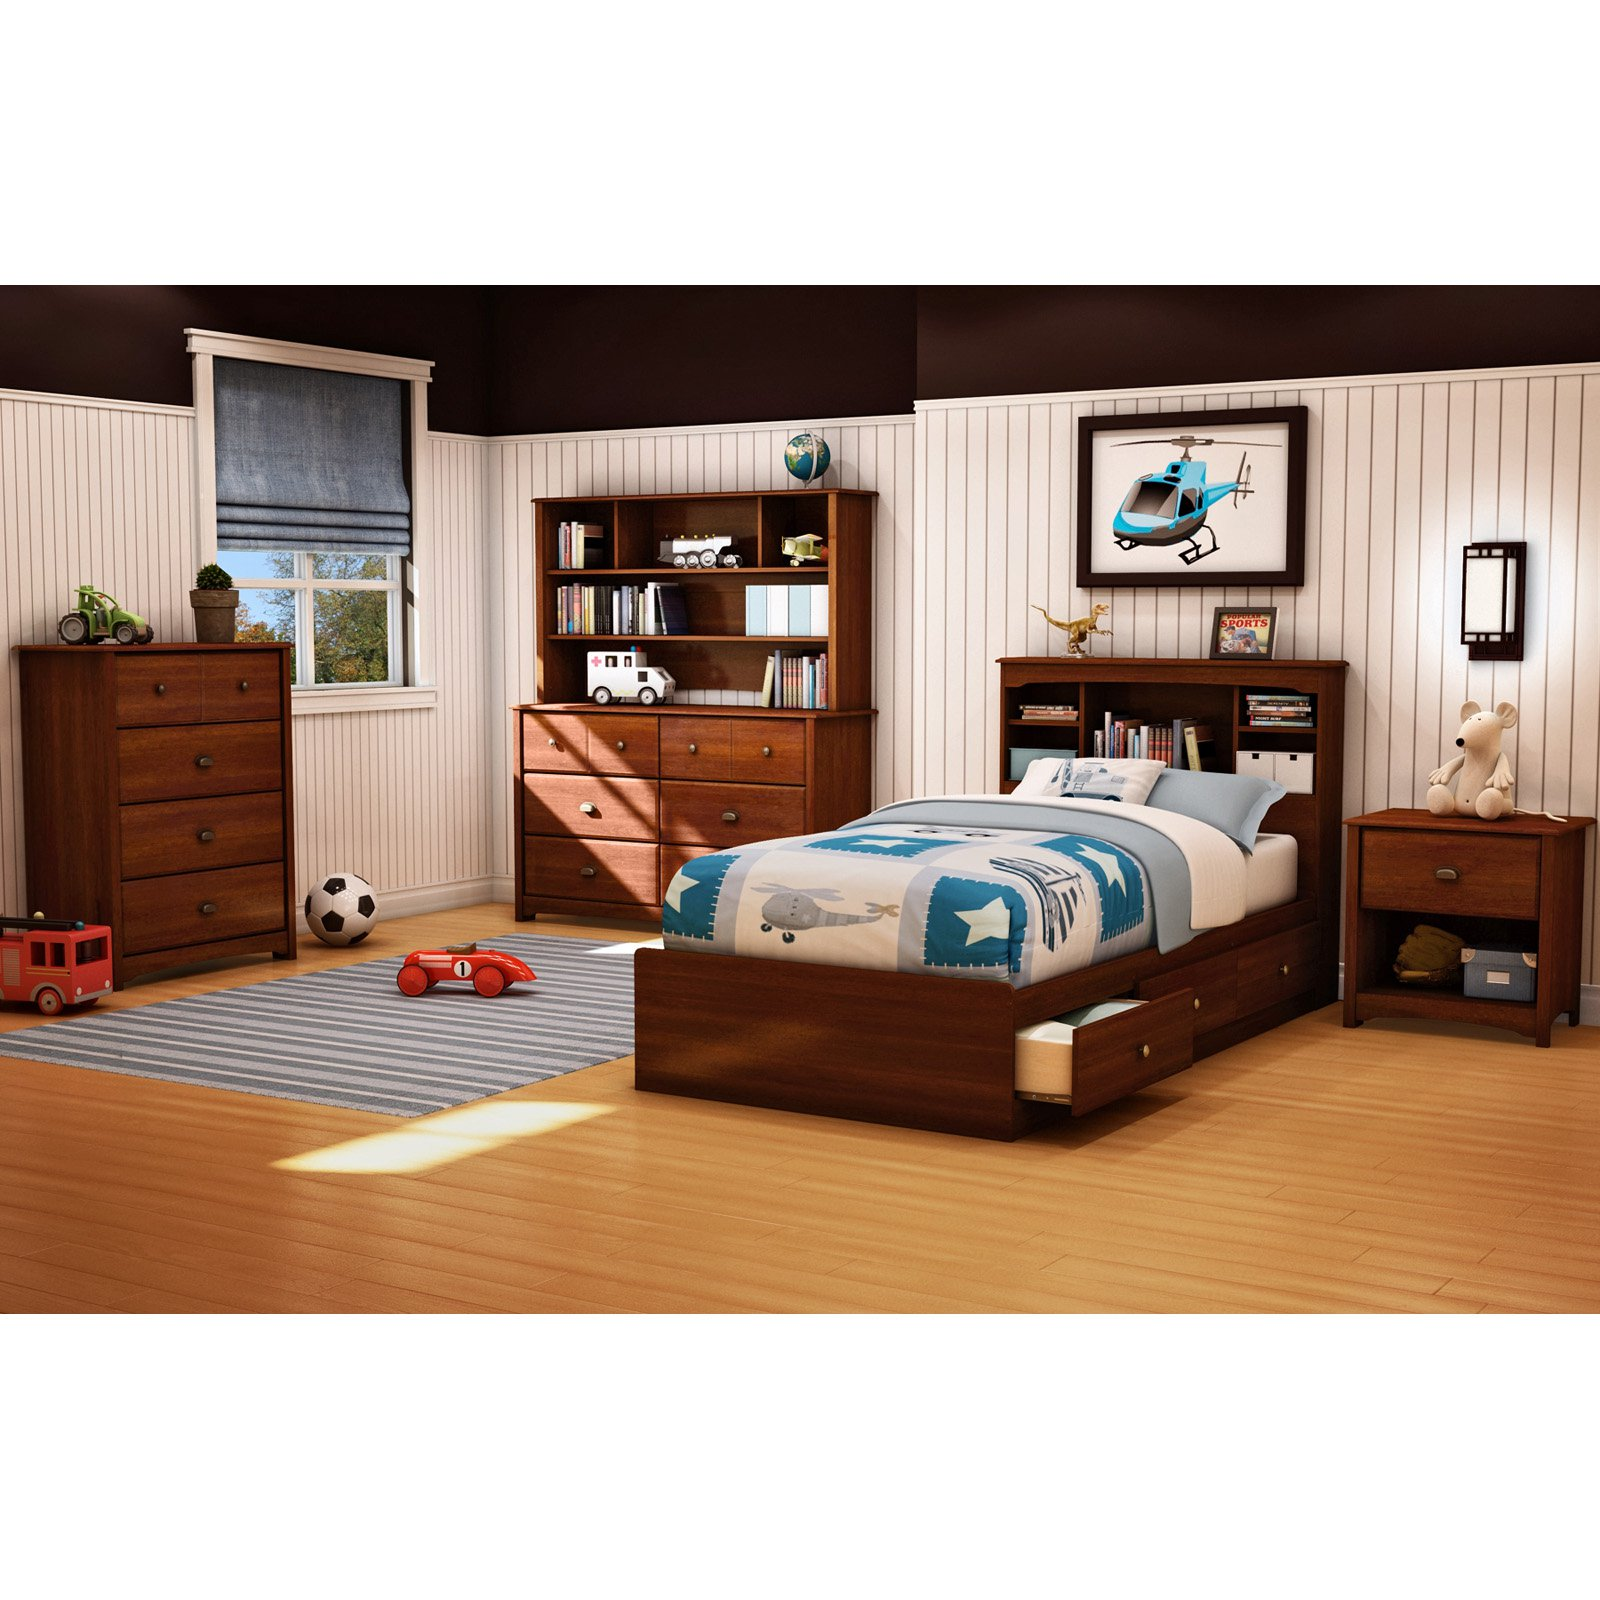 Modern Twin Bedroom Sets For Boys Painting